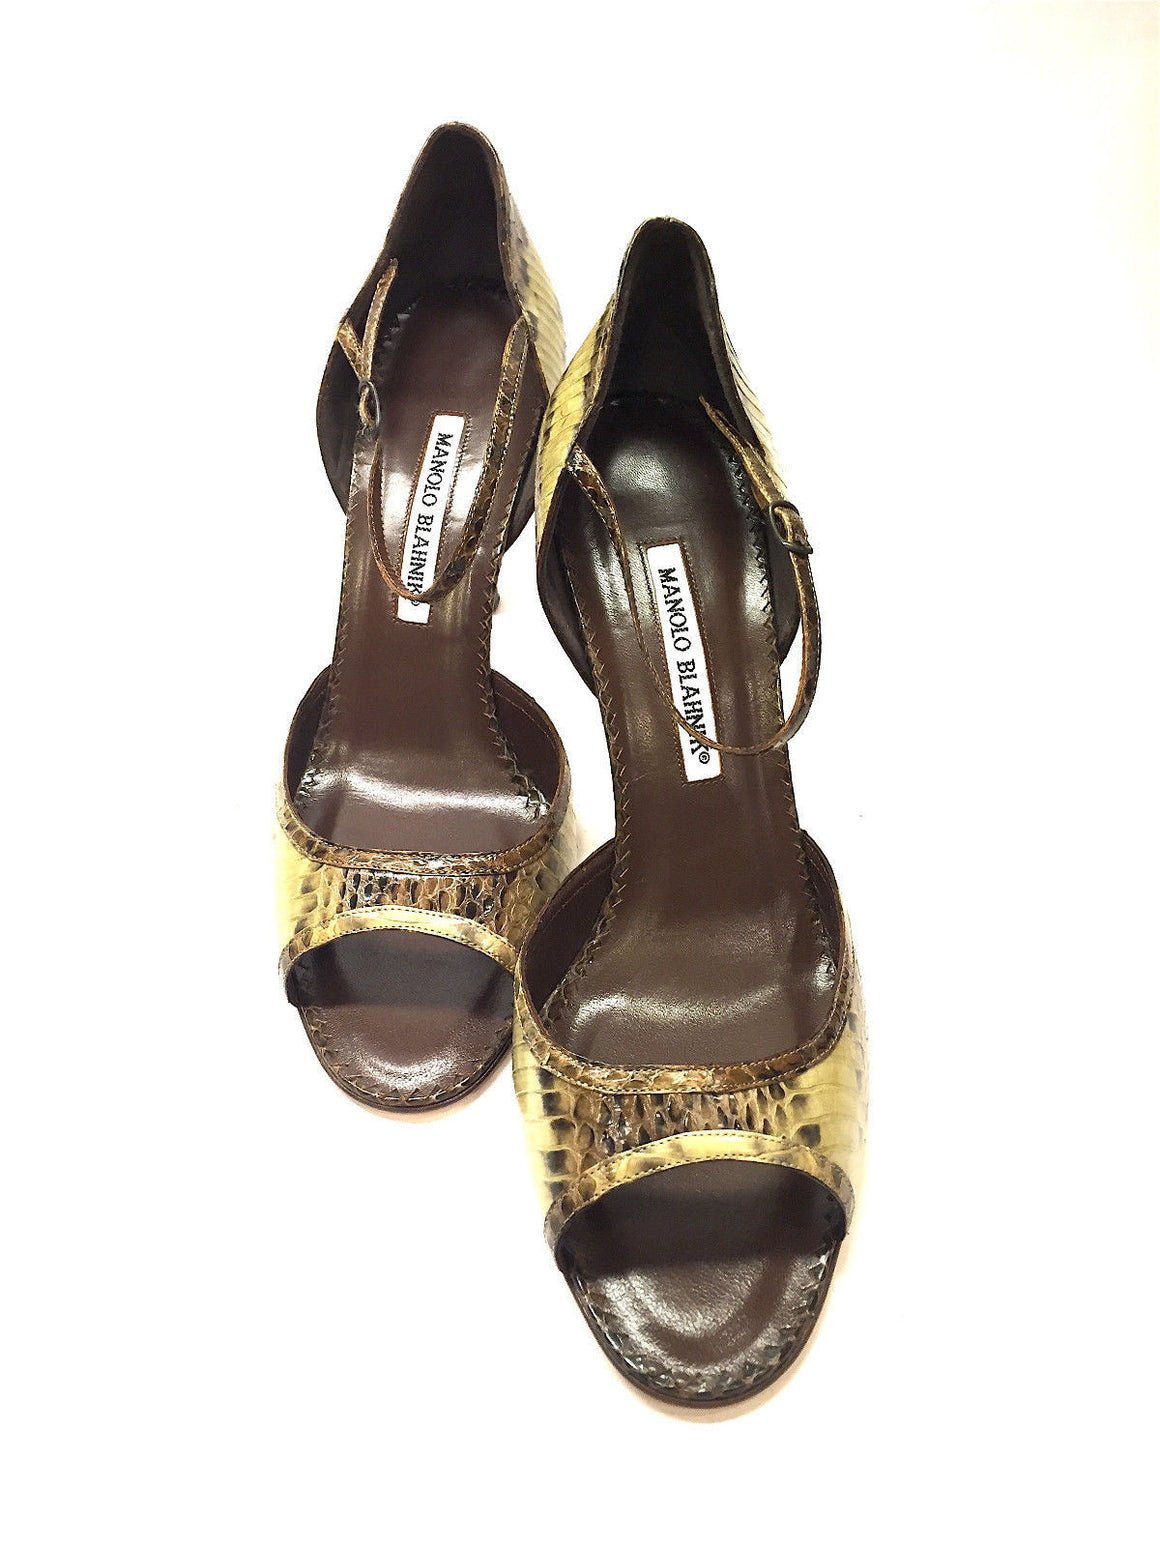 bisbiz.com MANOLO BLAHNIK Brown/Olive Python Peep-Toe Ankle-Strap Heel Pumps Shoes  Size: 39.5 / 9.5 - Bis Luxury Resale